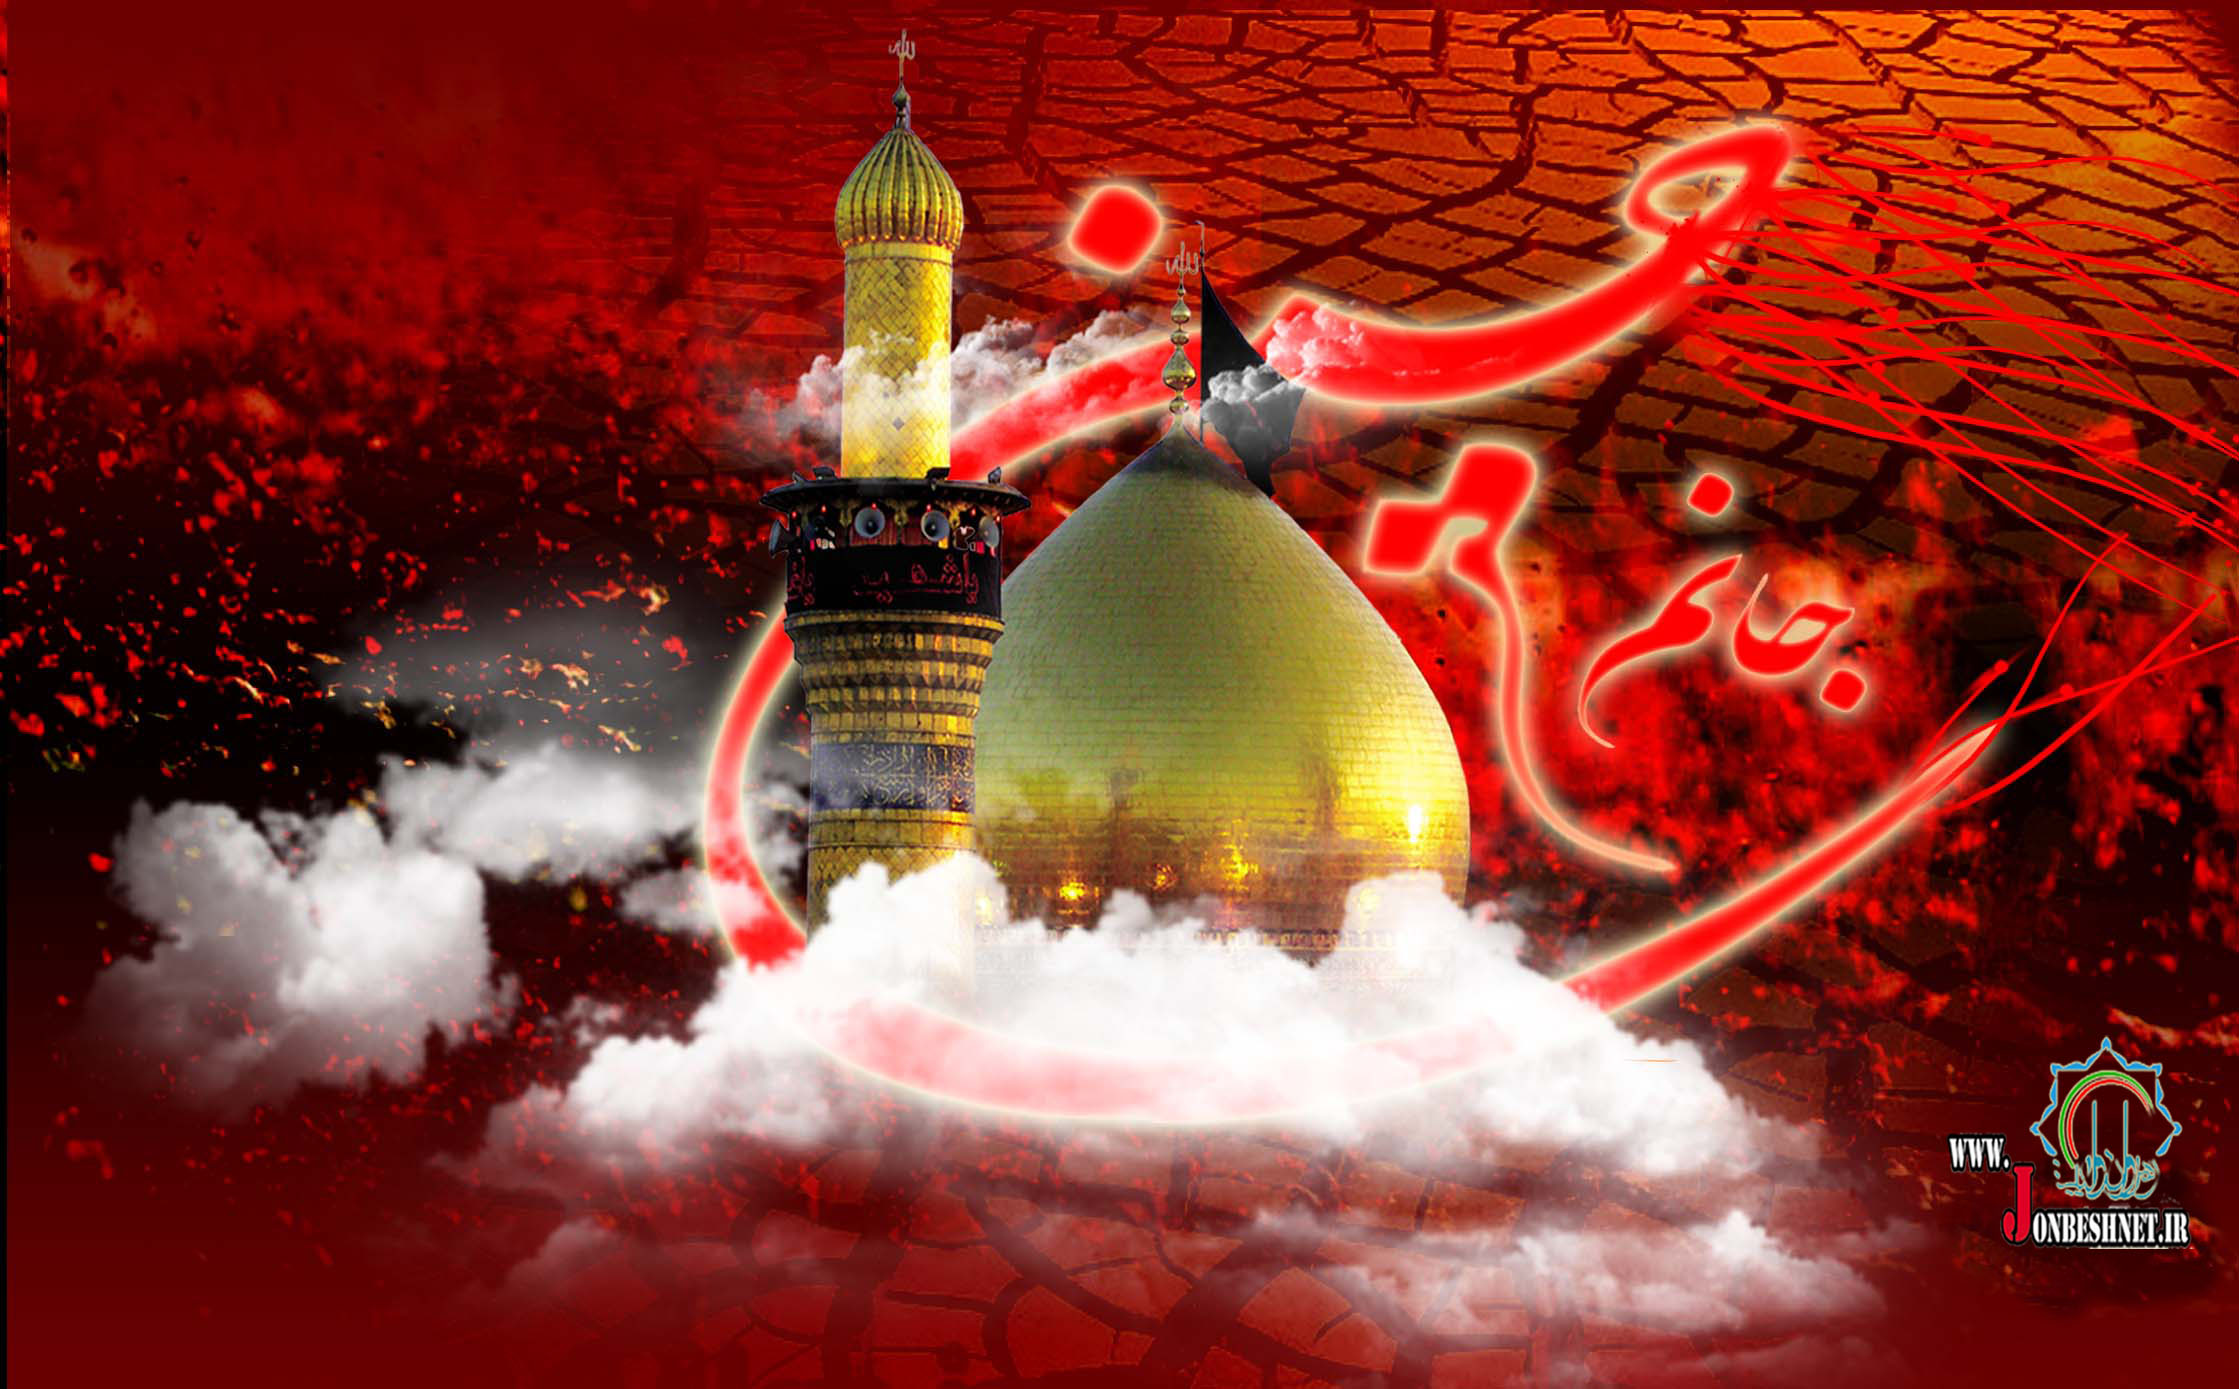 http://www.welayatnet.com/sites/default/files/media/photogallery/muharram_2.jpg